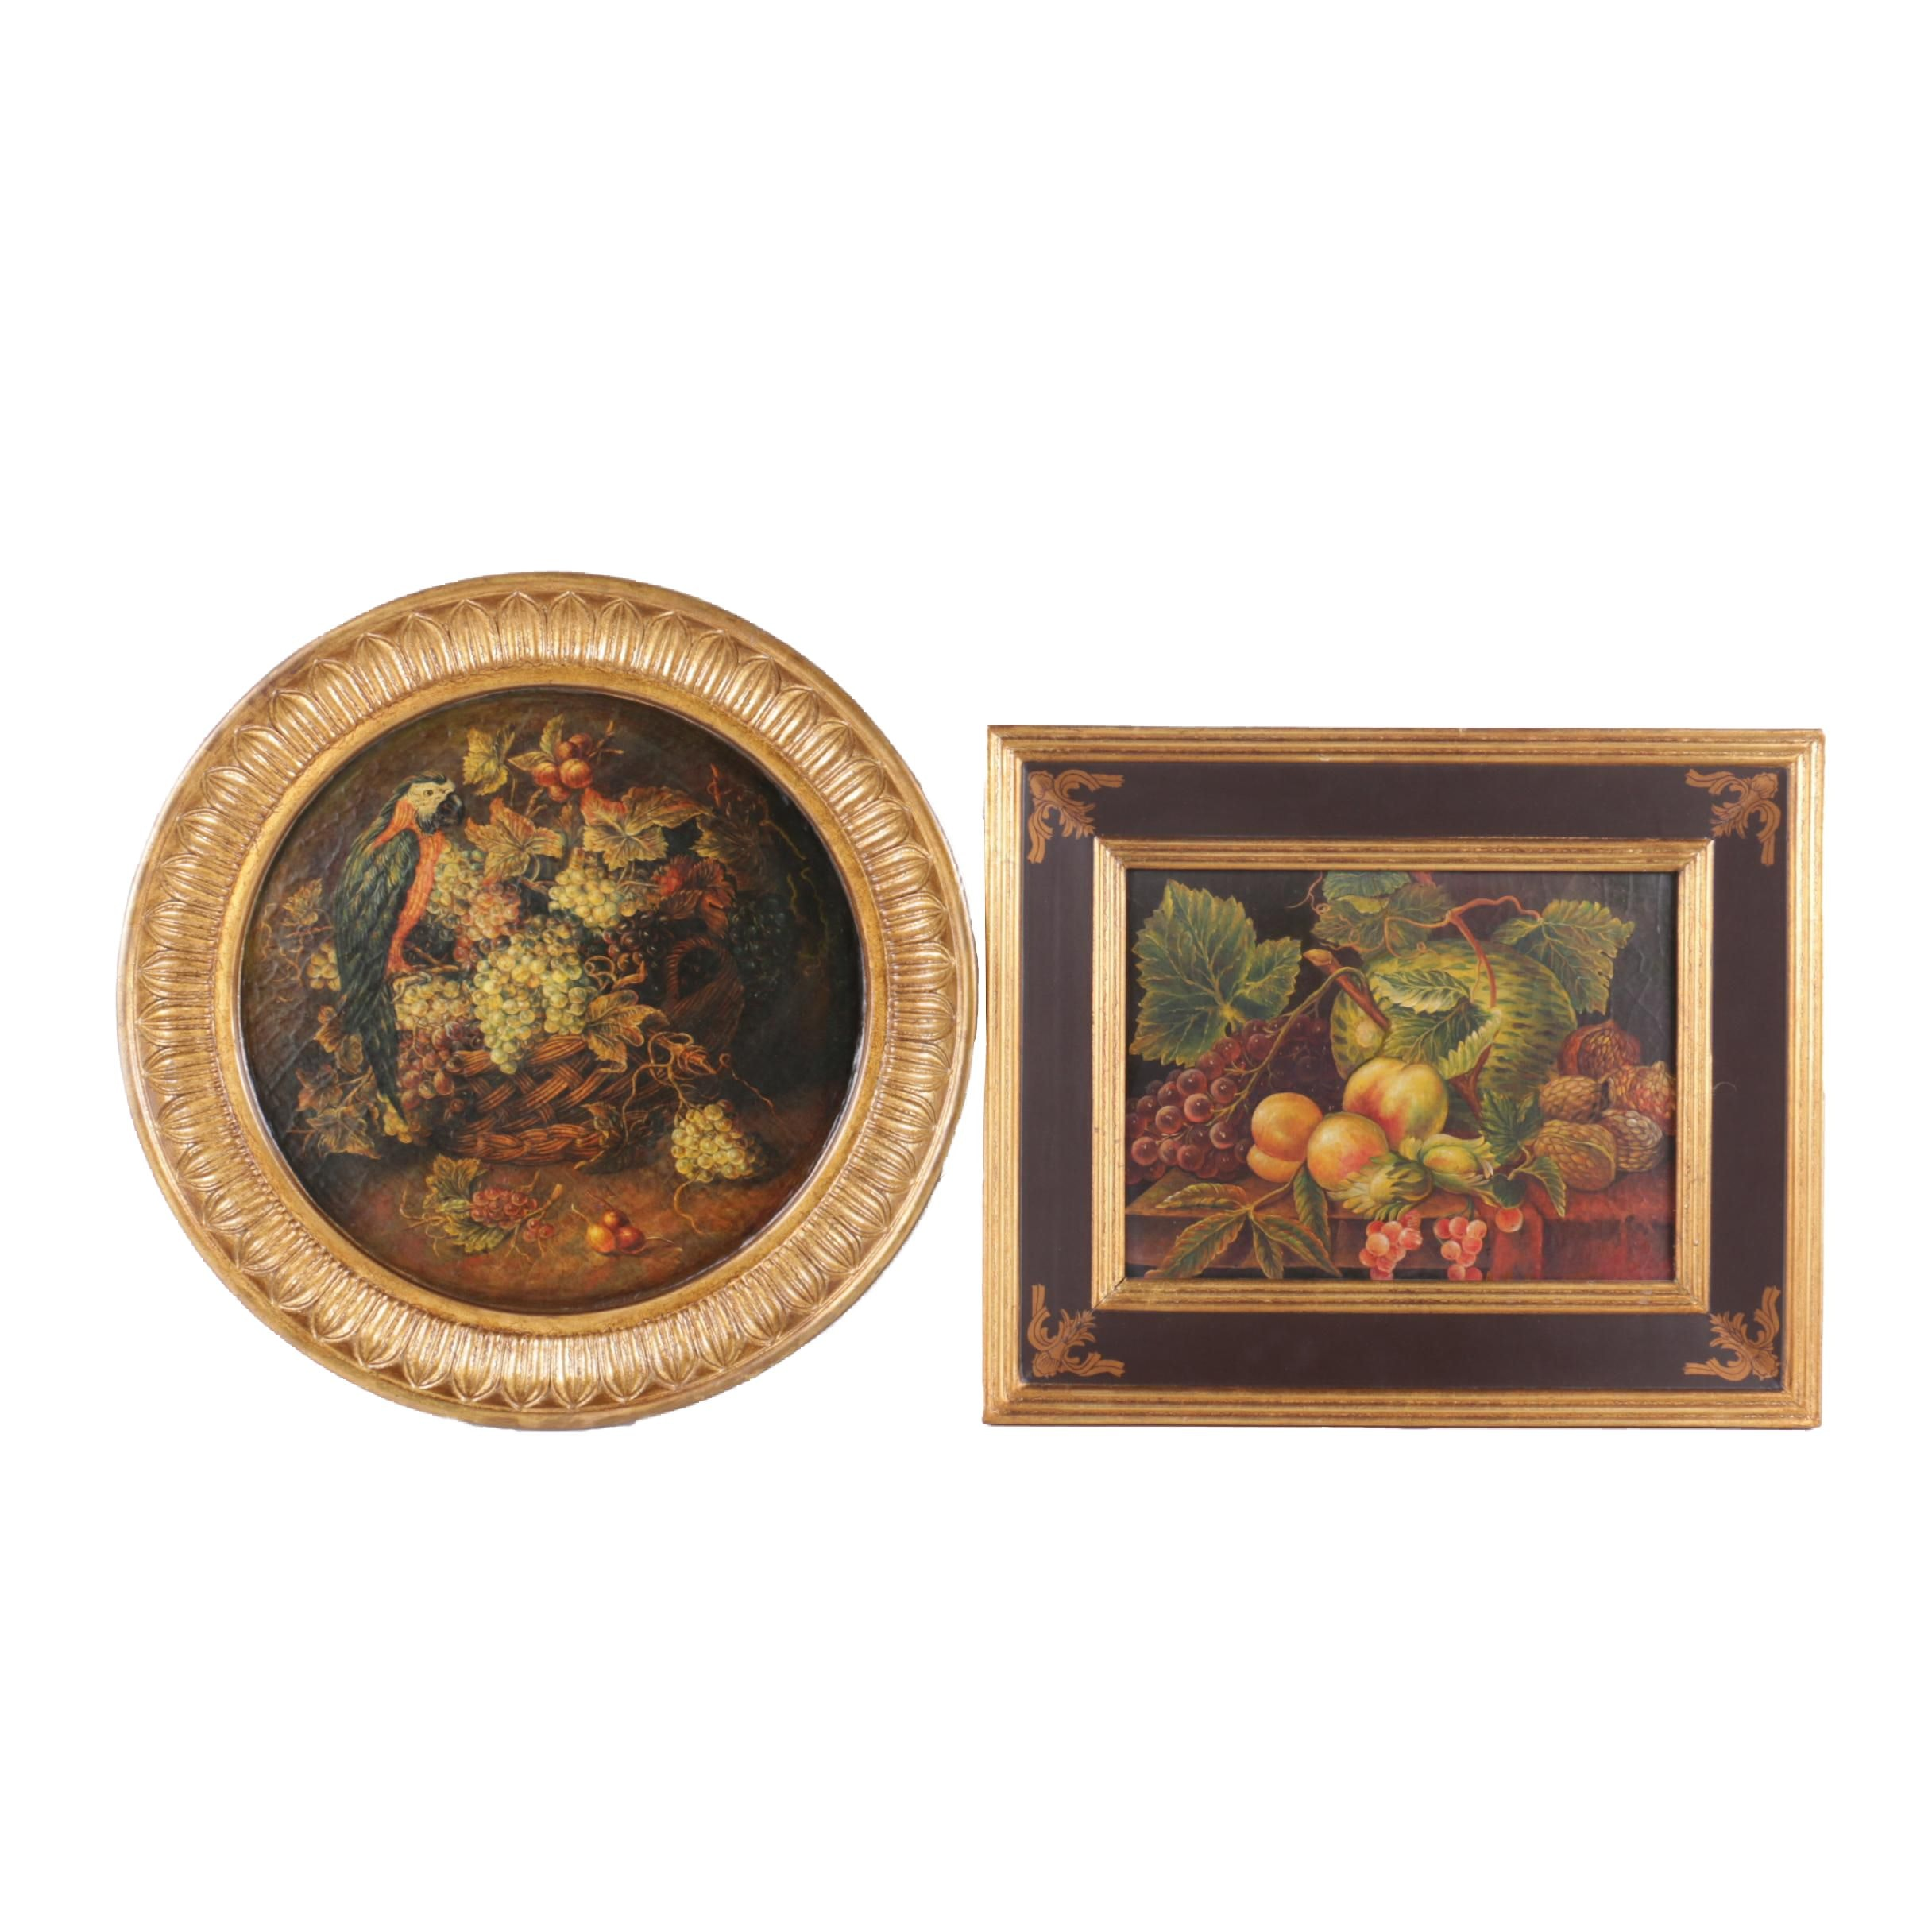 Decorative Reproduction Prints of Still Lifes on Panel